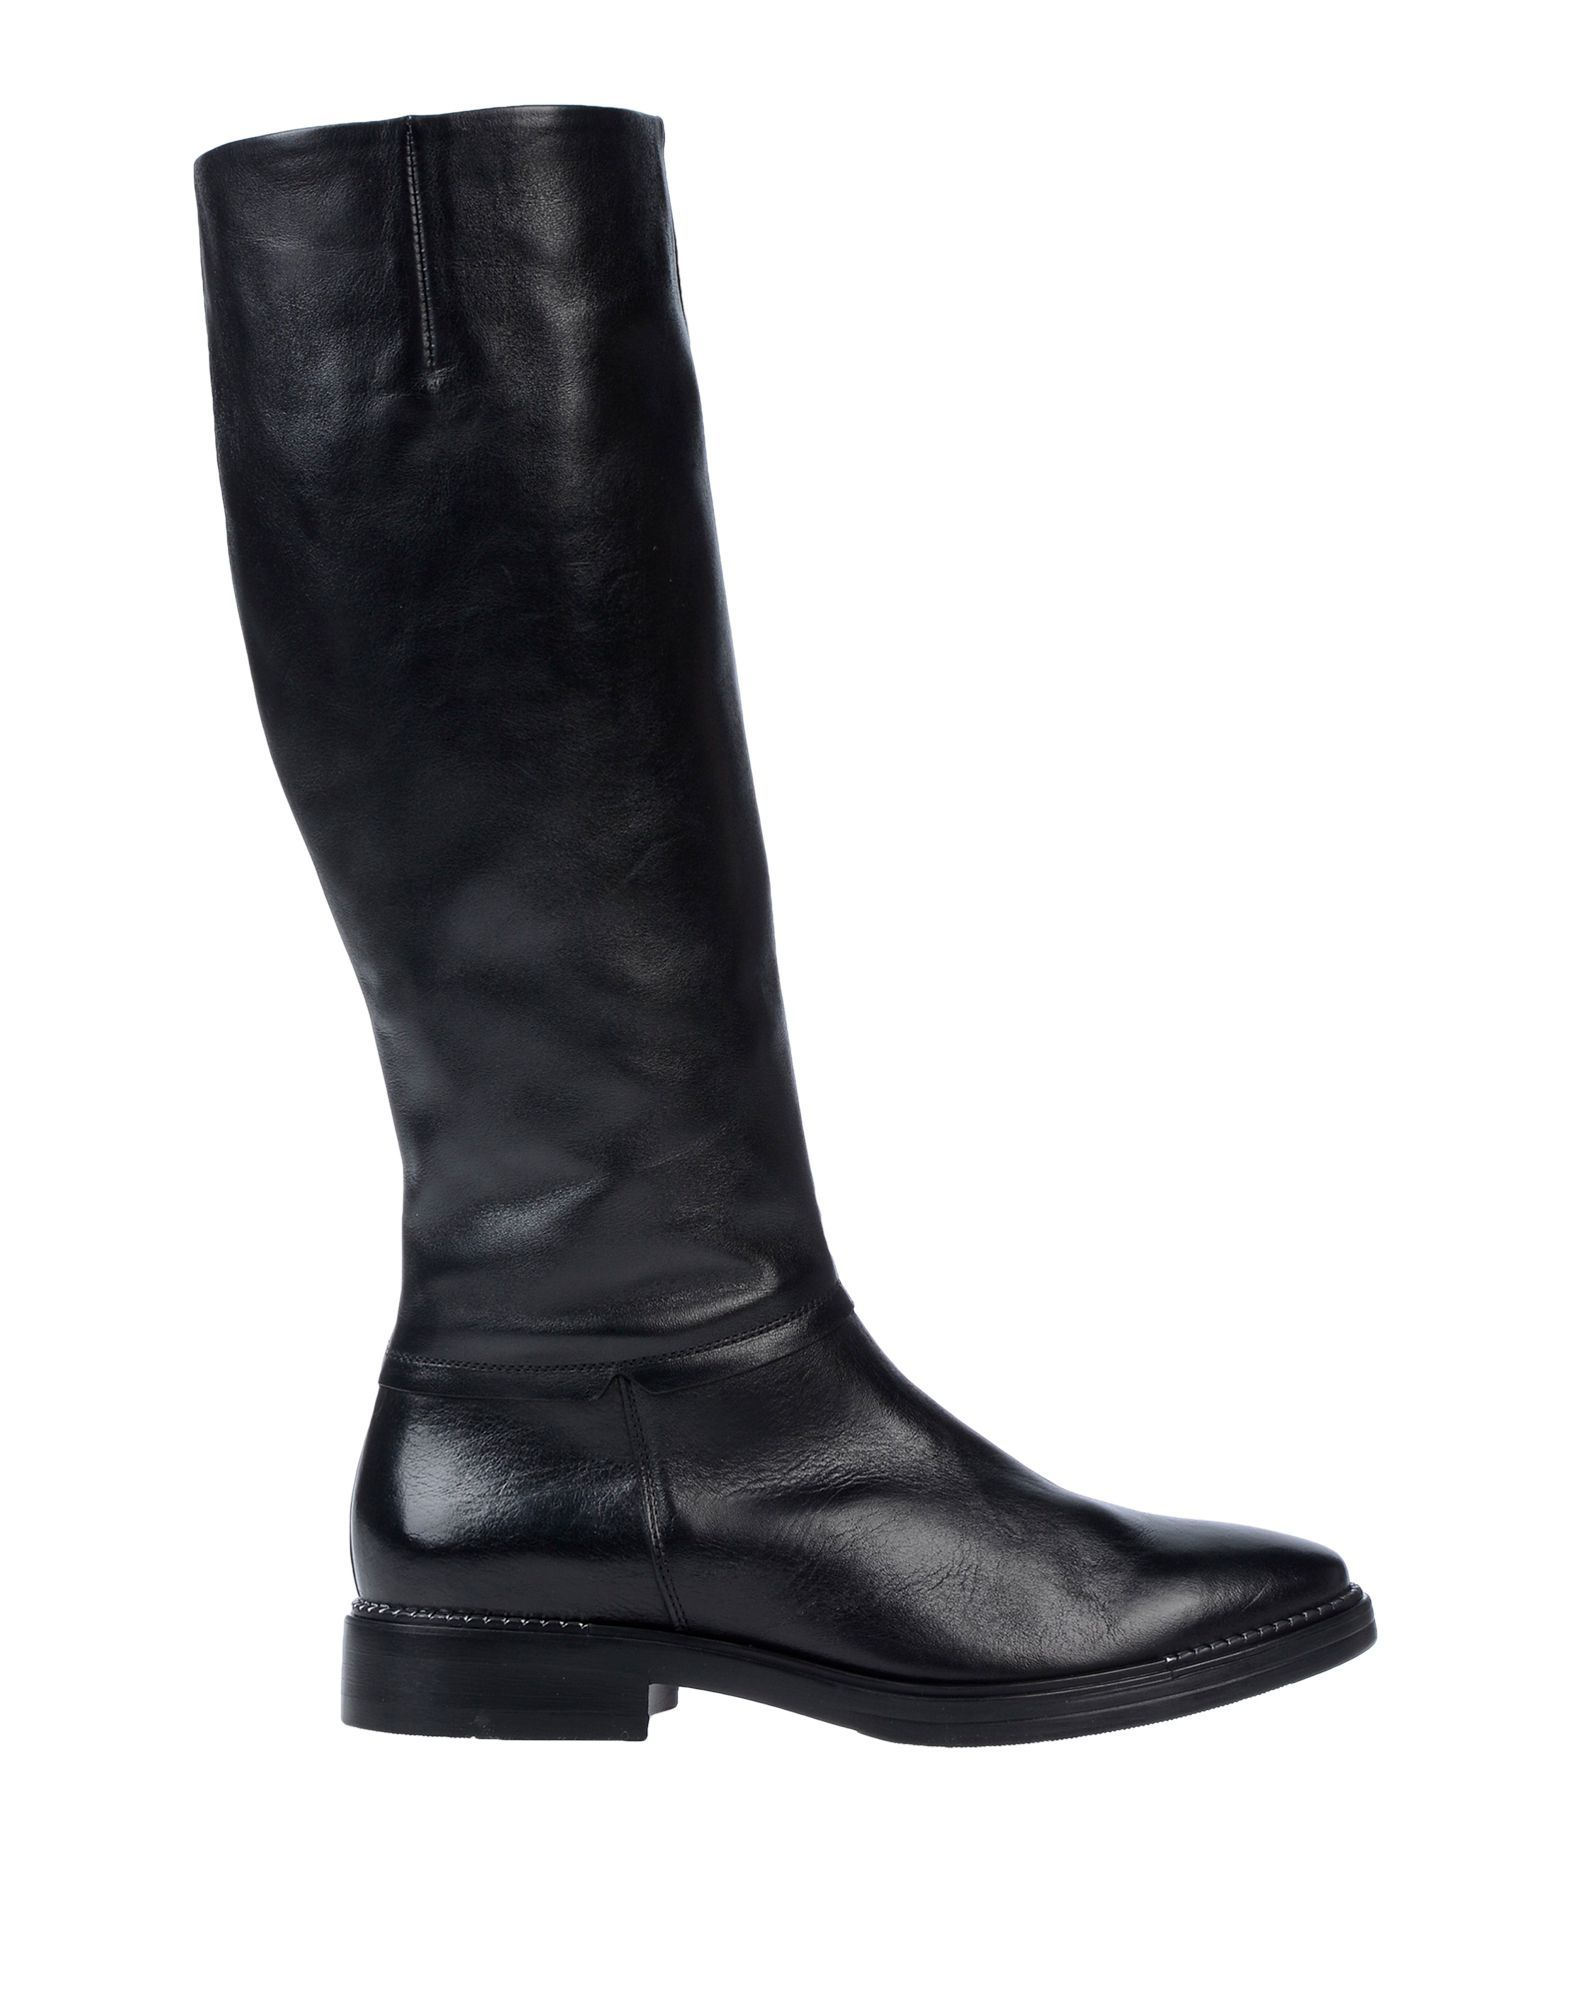 Tosca Blu Black Leather Boots